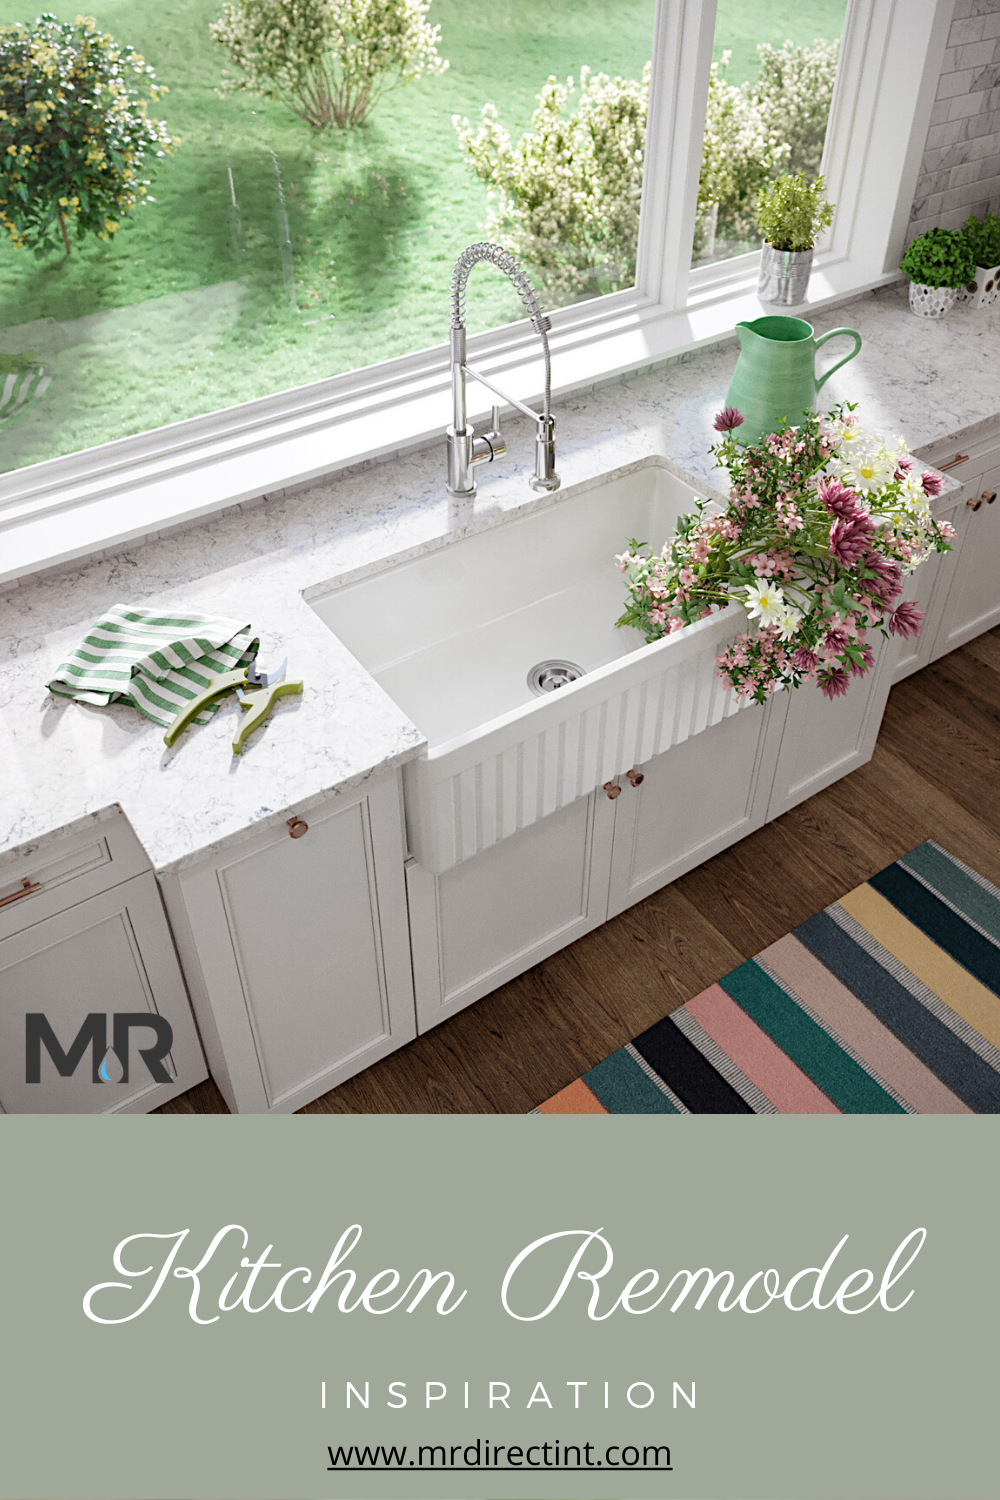 Make the most out of your kitchen space with a timeless, vintage inspired apron front farmhouse sink. add a fun, refreshing, and functional tool to your kitchen space that is beautiful, classic, and offers a touch of modernity.  Get all the details here... #kitchenremodel #remodel #renovation #kitchenideas #kitchensink #farmhousekitchen #farmhouse #springremodel #homedesign #remodelingideas #homedecorideas #kitchendecor #decor #kitchenideas #farmhousesink #fireclay #kitchentrends